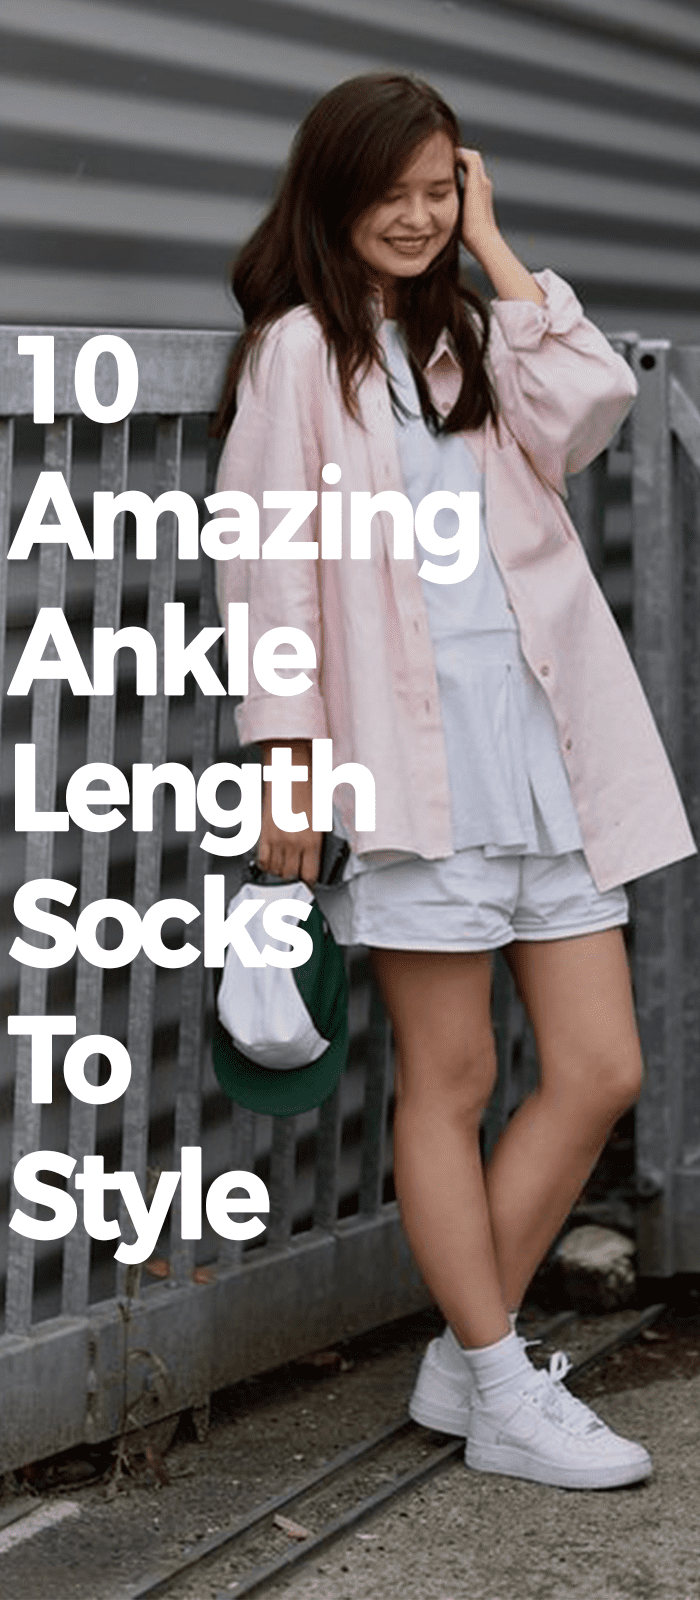 10 Amazing Ankle Length Socks To Style